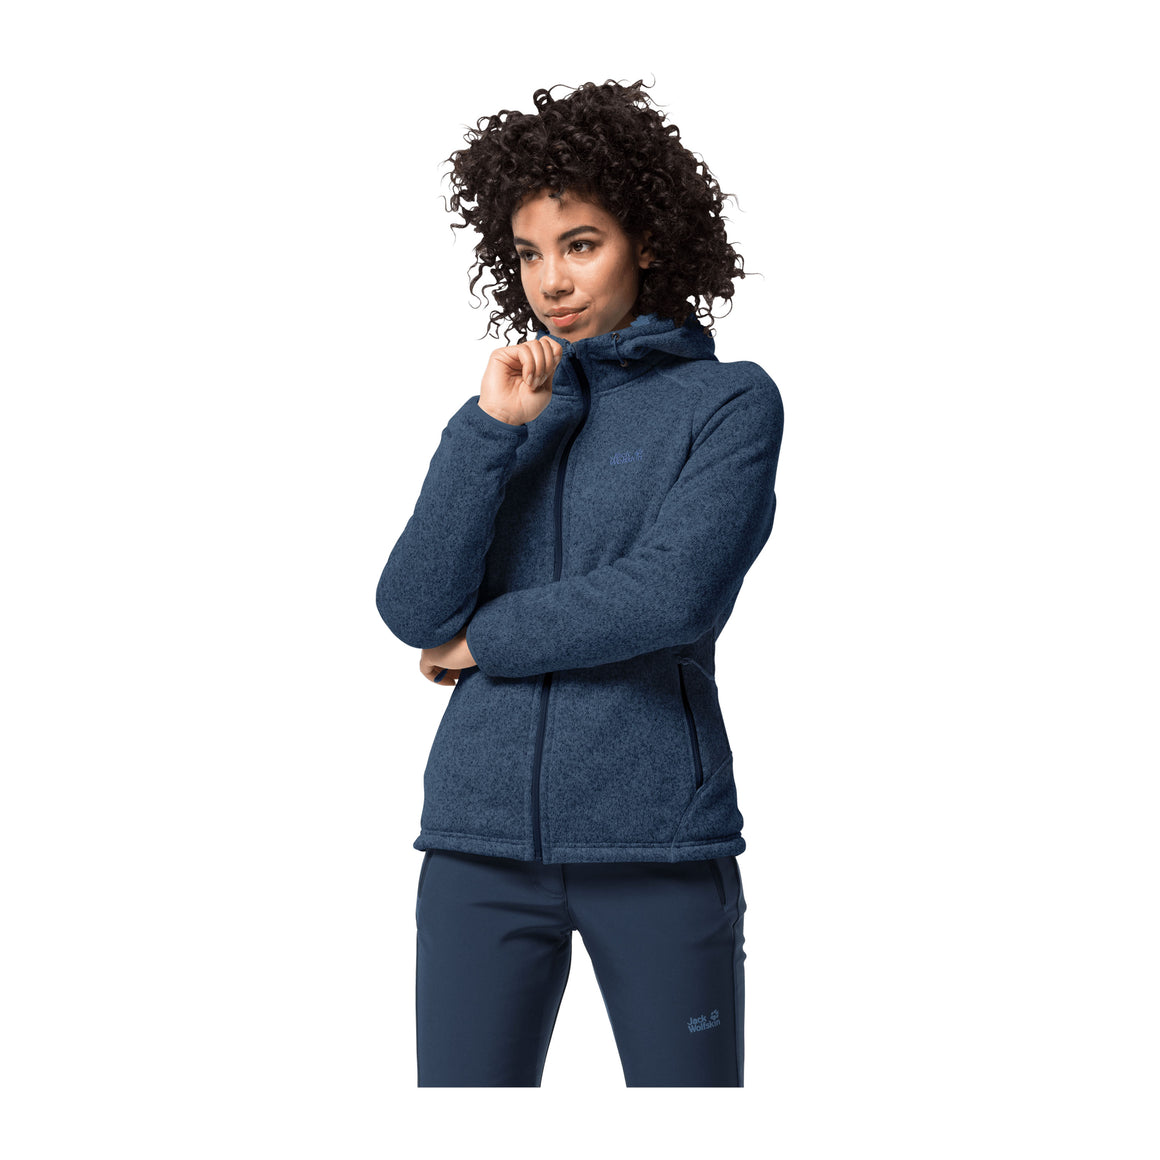 Lakland Fleece Jacket for Women in Dark Indigo